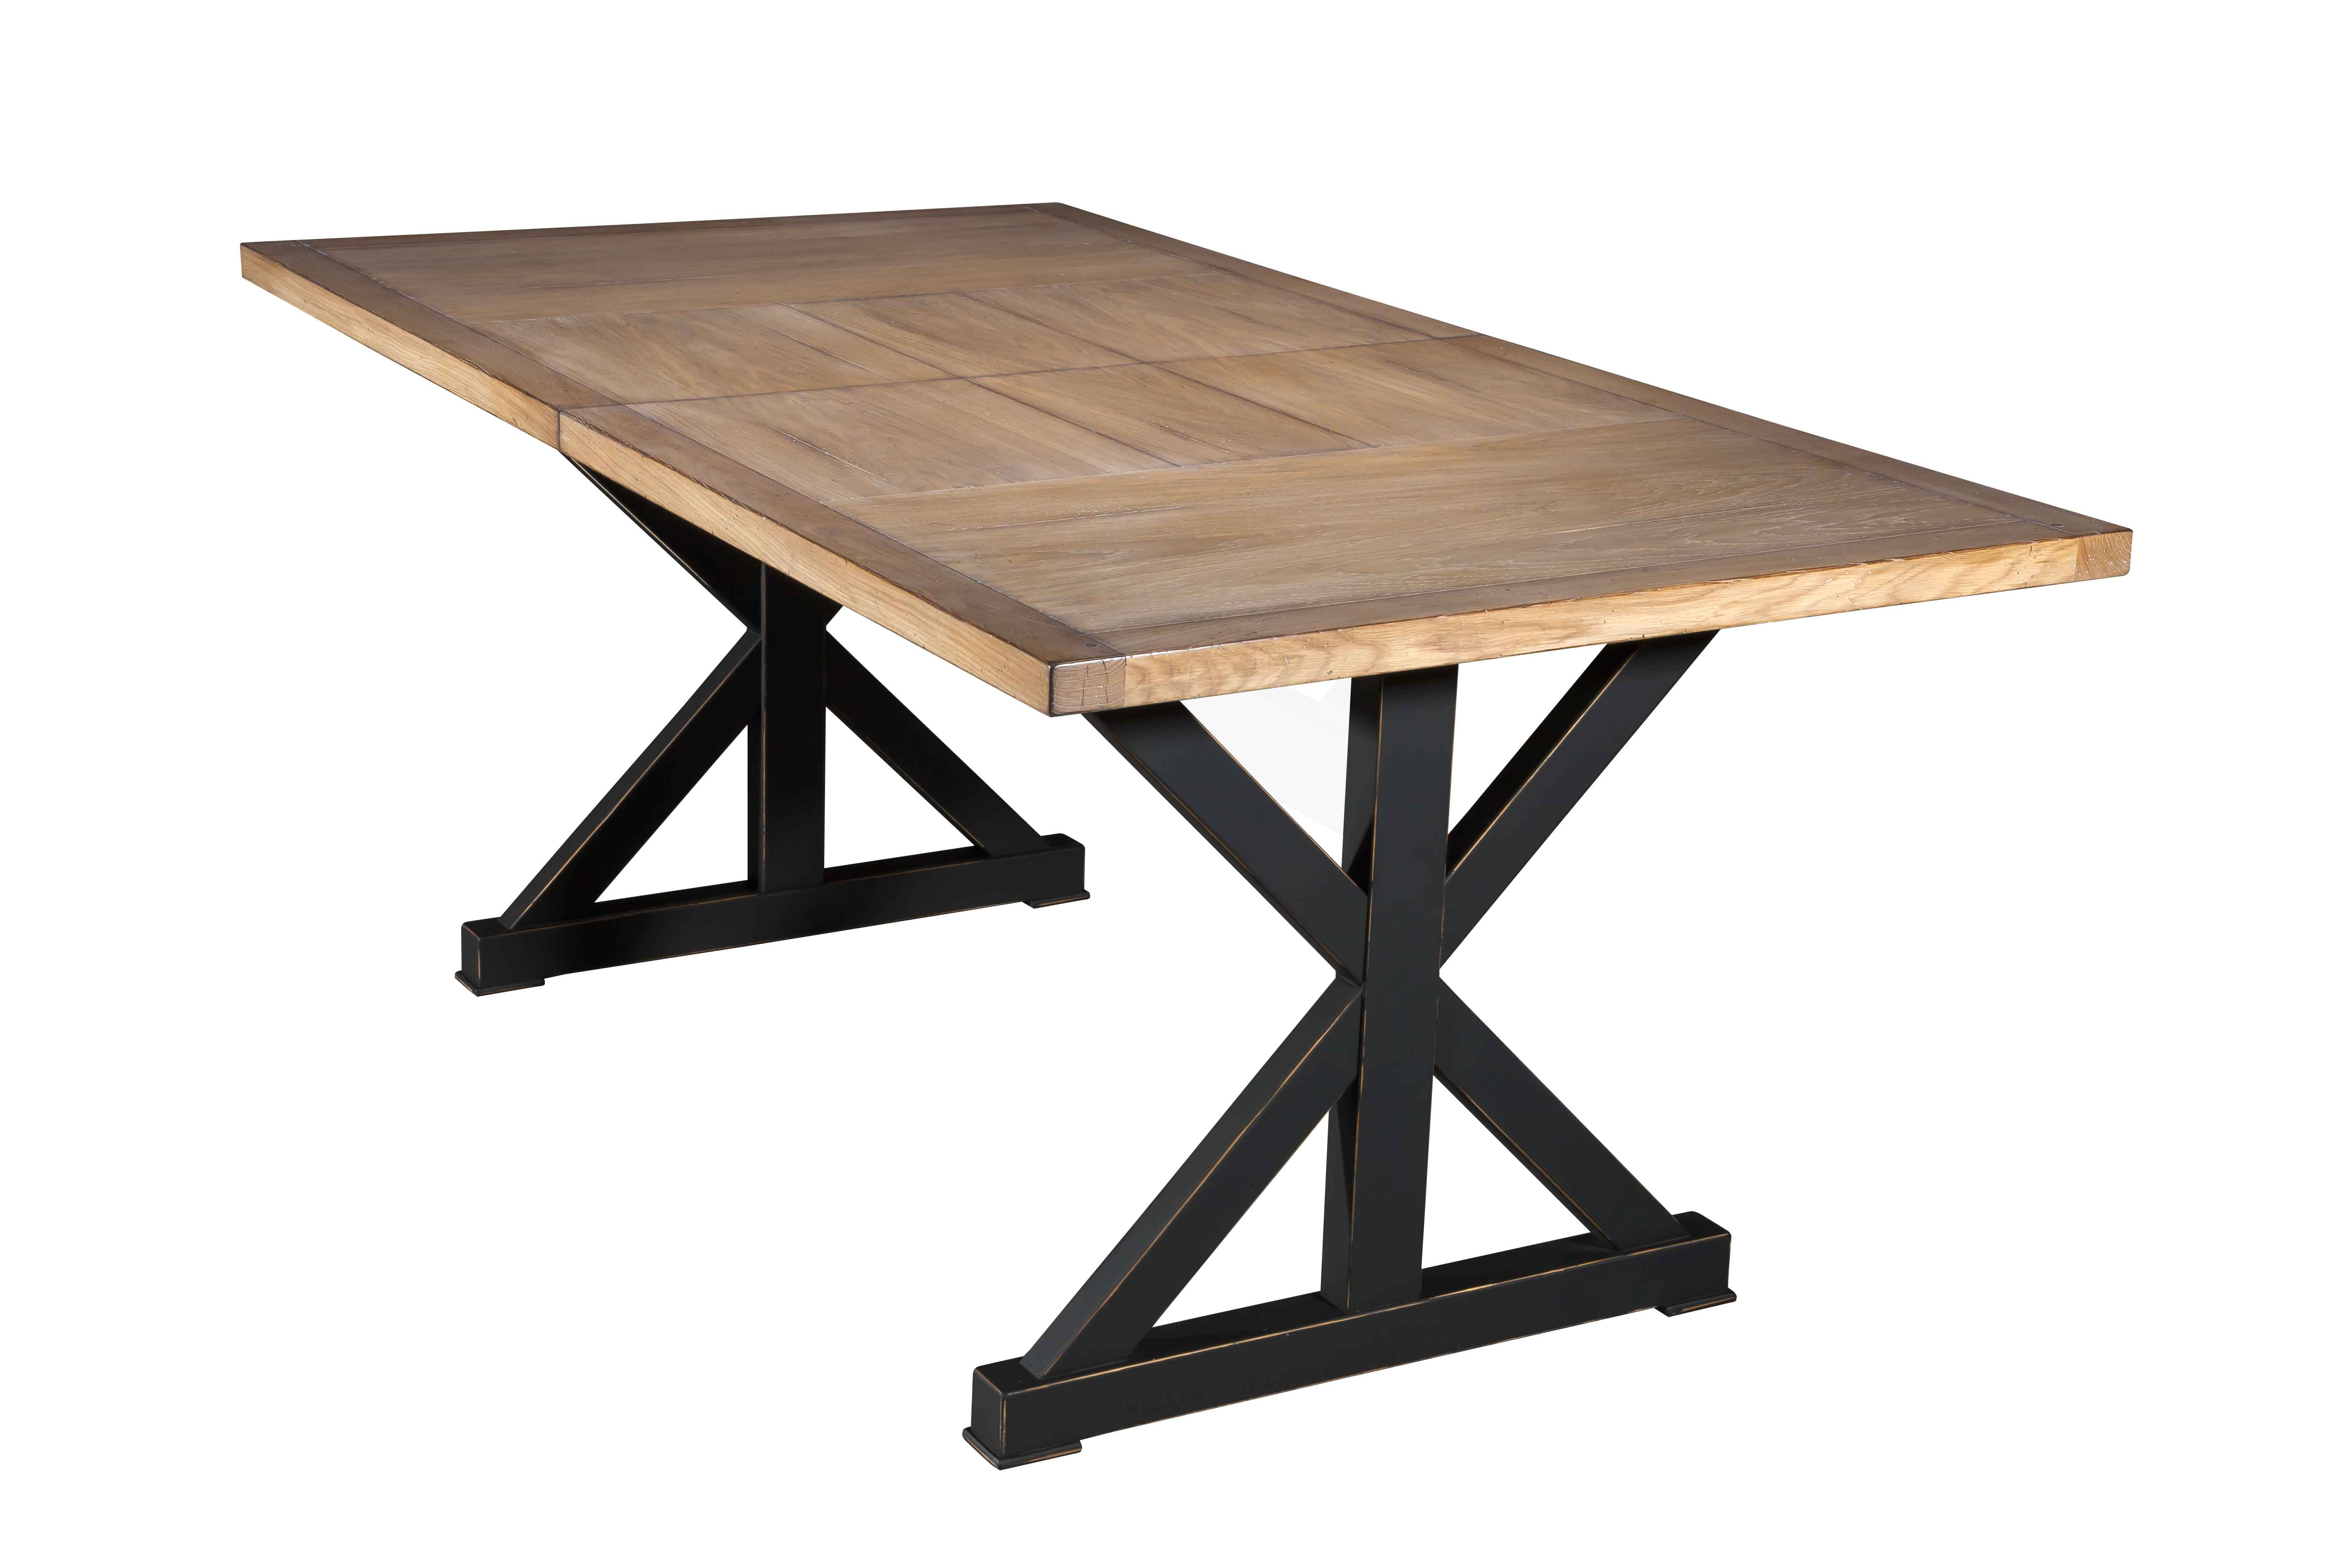 Emejing table salle a manger style atelier contemporary - Table salle a manger metal ...